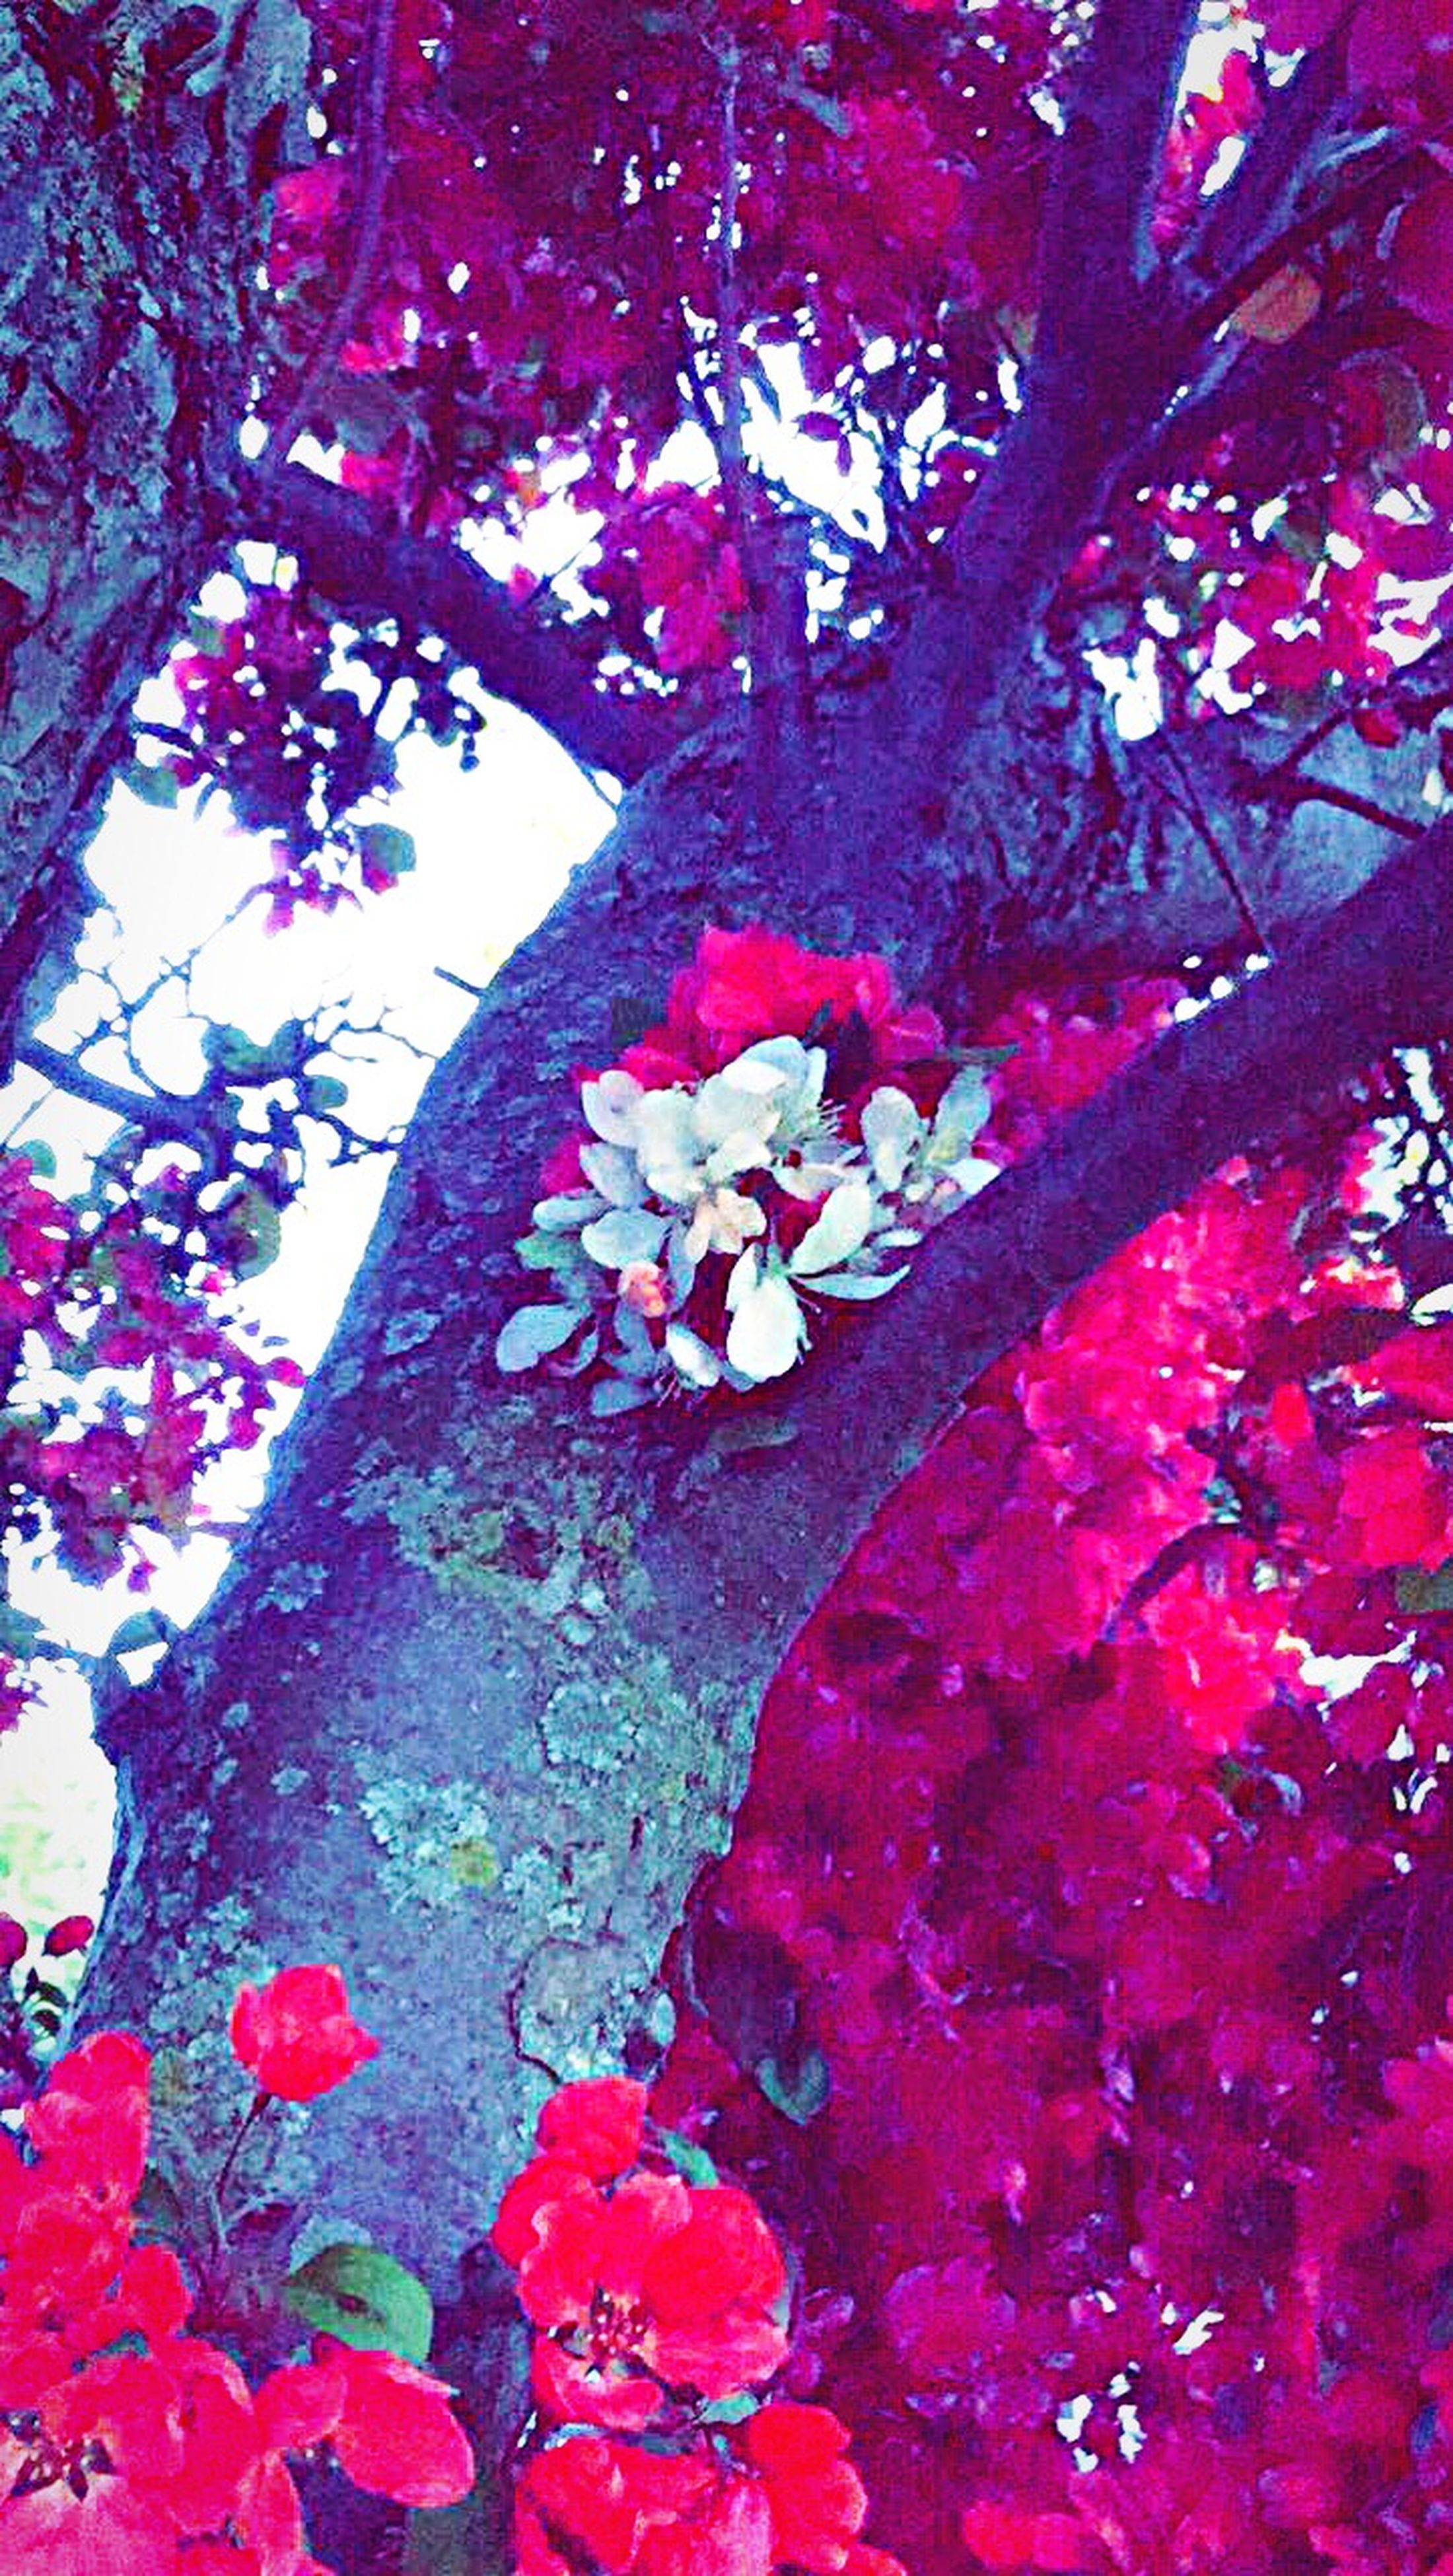 flower, beauty in nature, tree, growth, nature, fragility, petal, blossom, branch, low angle view, no people, freshness, day, springtime, outdoors, close-up, pink color, red, blooming, flower head